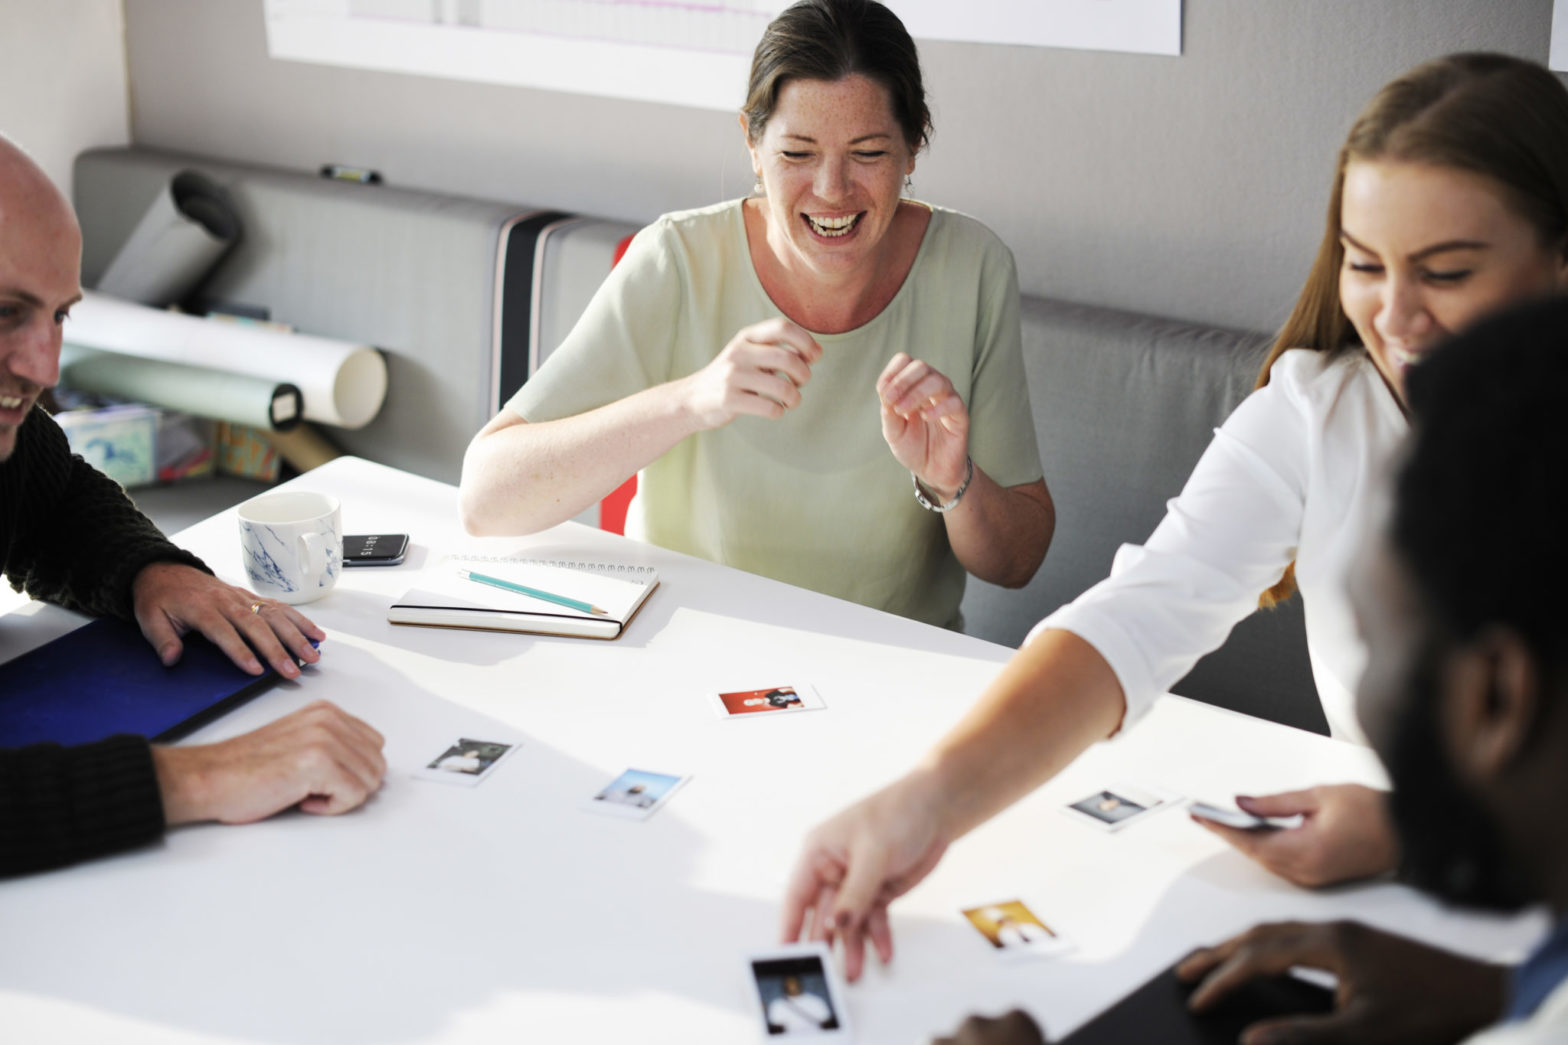 people-around-desk-looking-at-cards-working